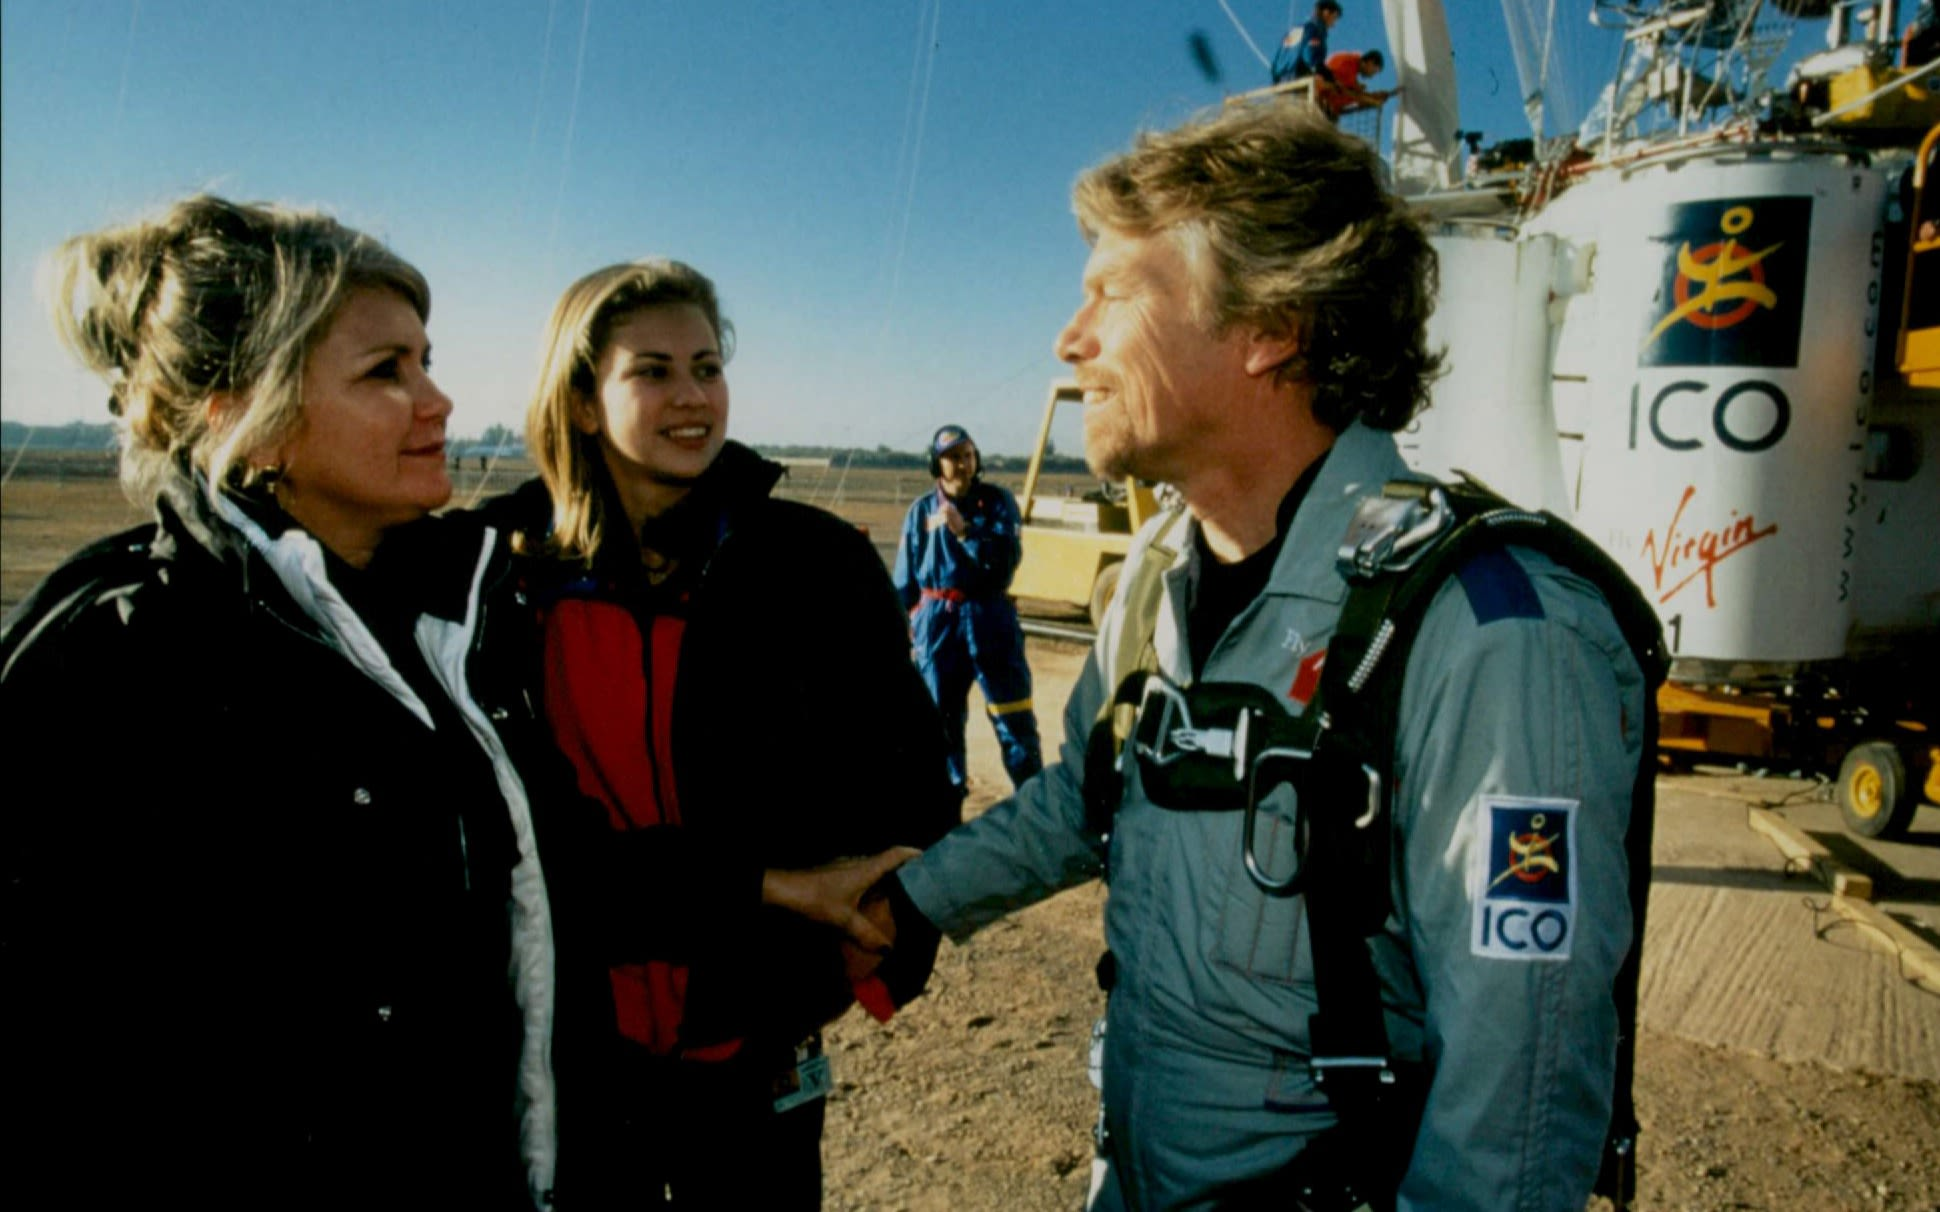 Richard Branson speaking to Joan Branson and Holly Branson in front of a hot air balloon